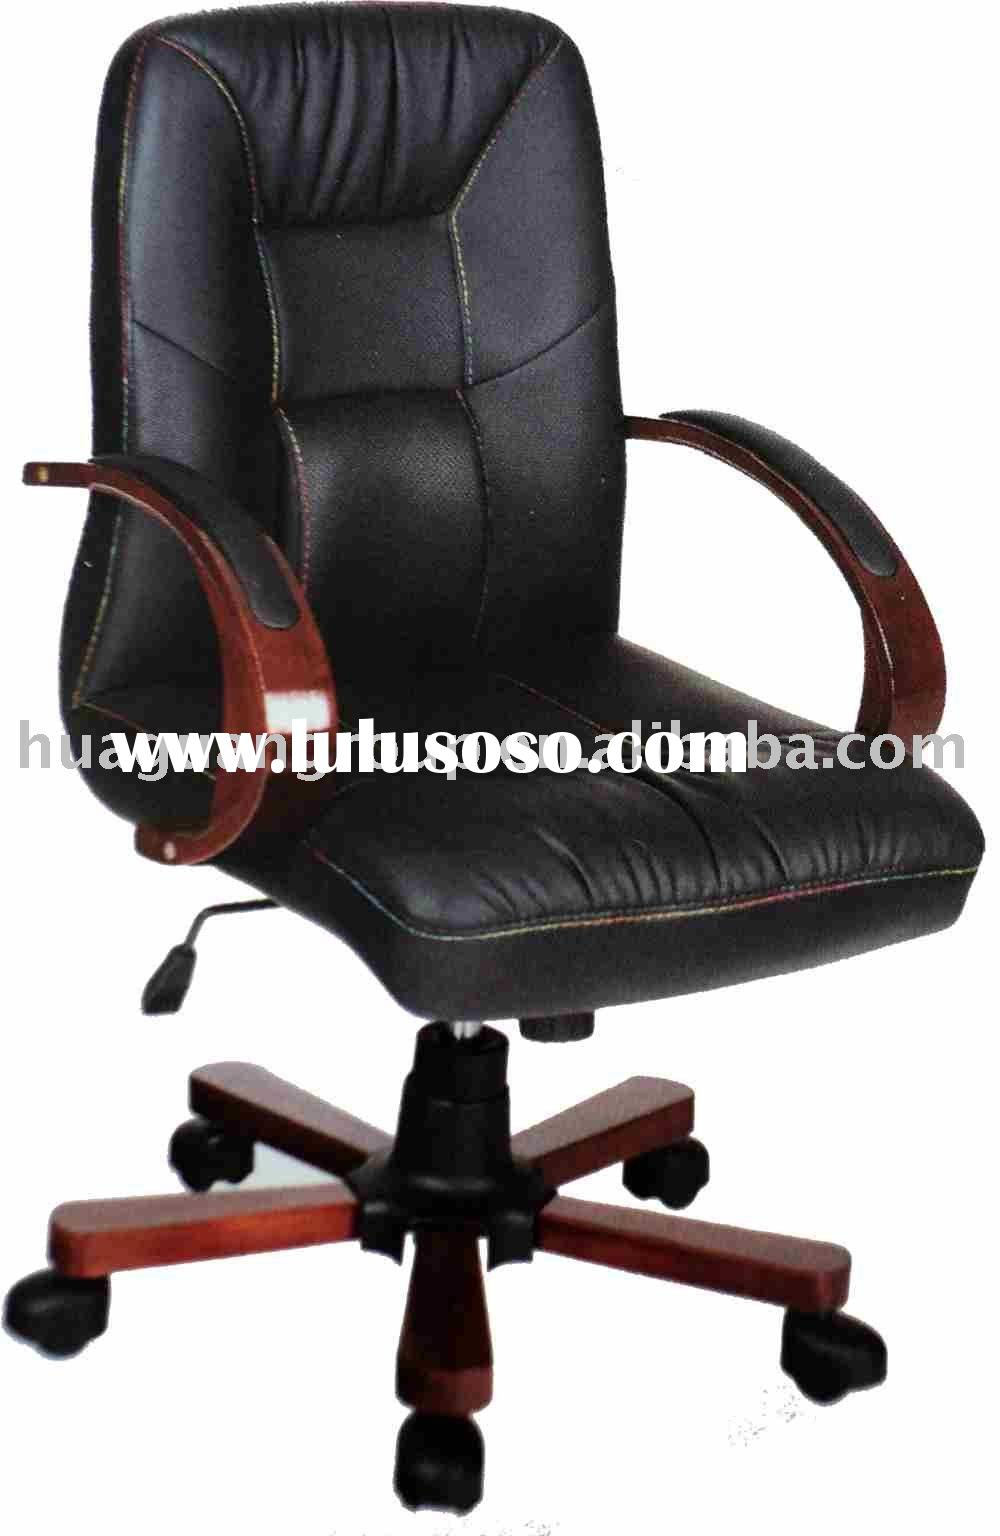 BEST lowcost ergonomic office chair for lower back pain? - BACK